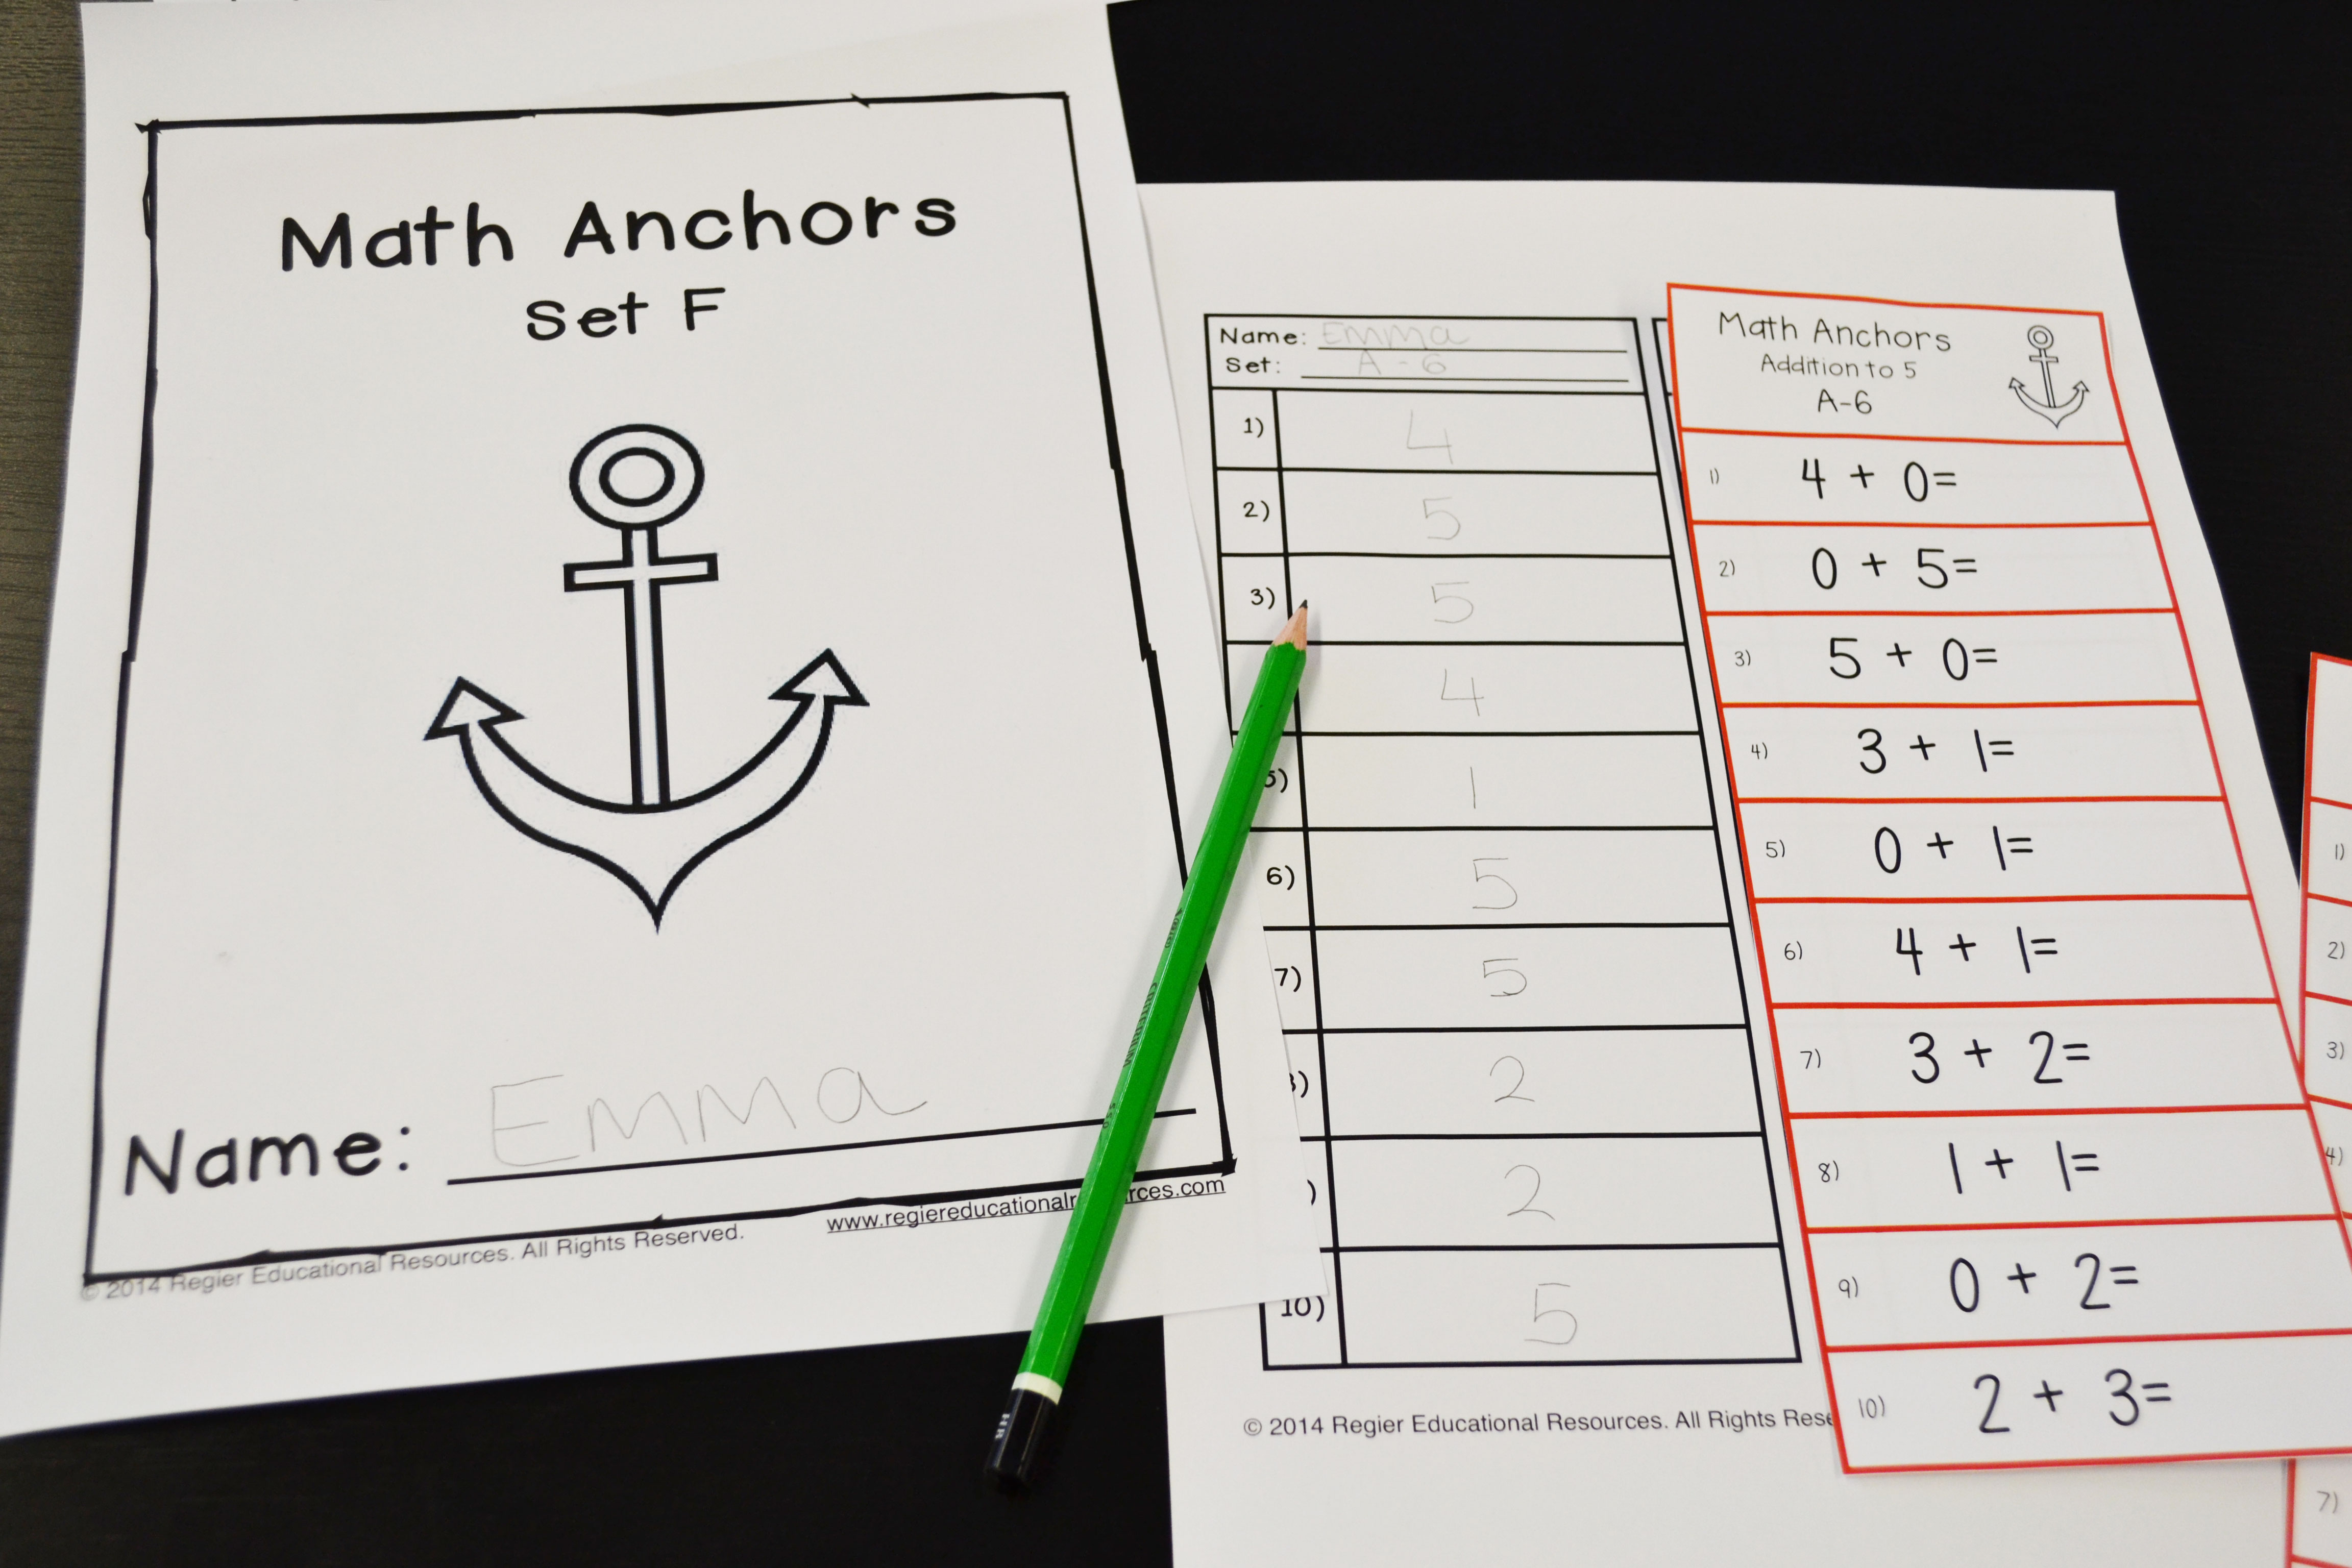 What are addition and subtraction math anchors?